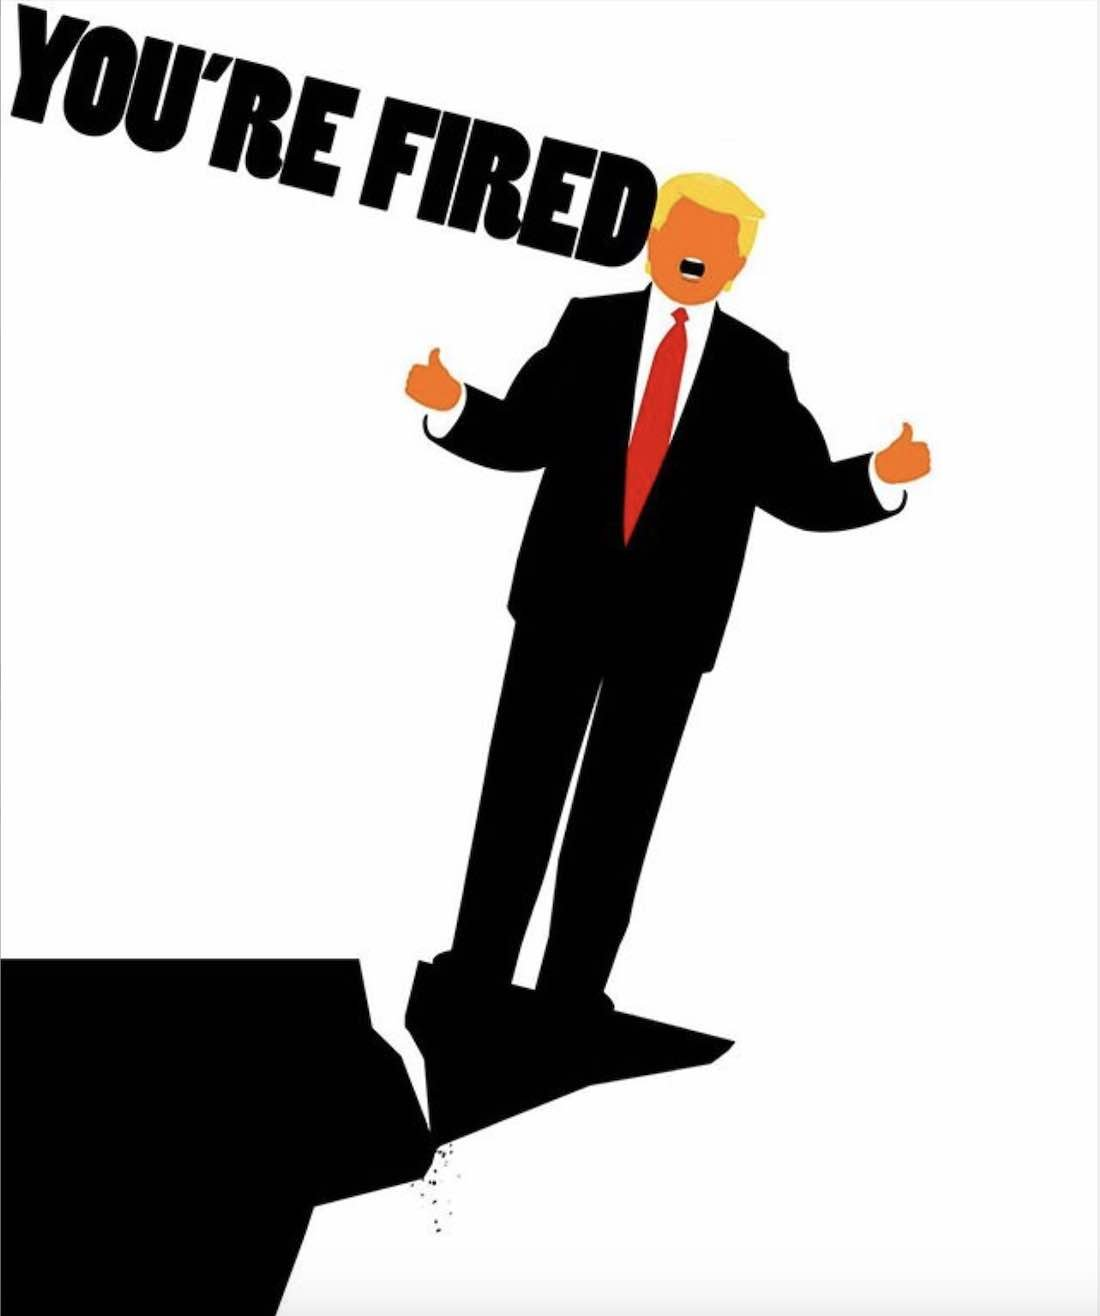 YOU ARE FIRED by Edel Rodriguez